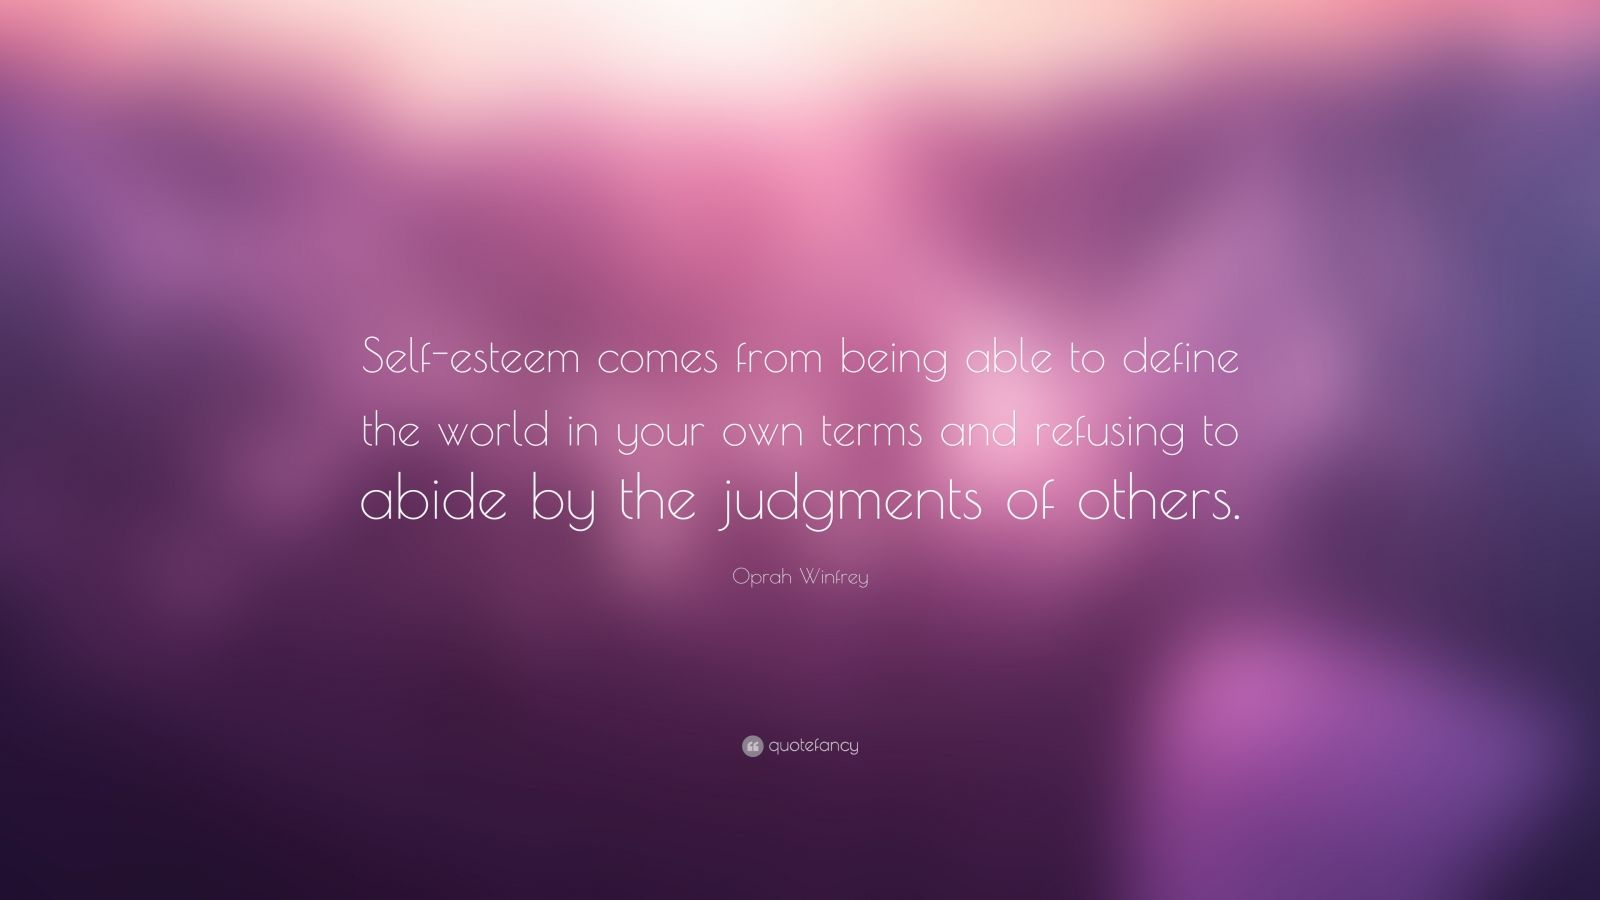 """Oprah Winfrey Quote: """"Self-esteem comes from being able to define the world in your own terms and refusing to abide by the judgments of others."""""""